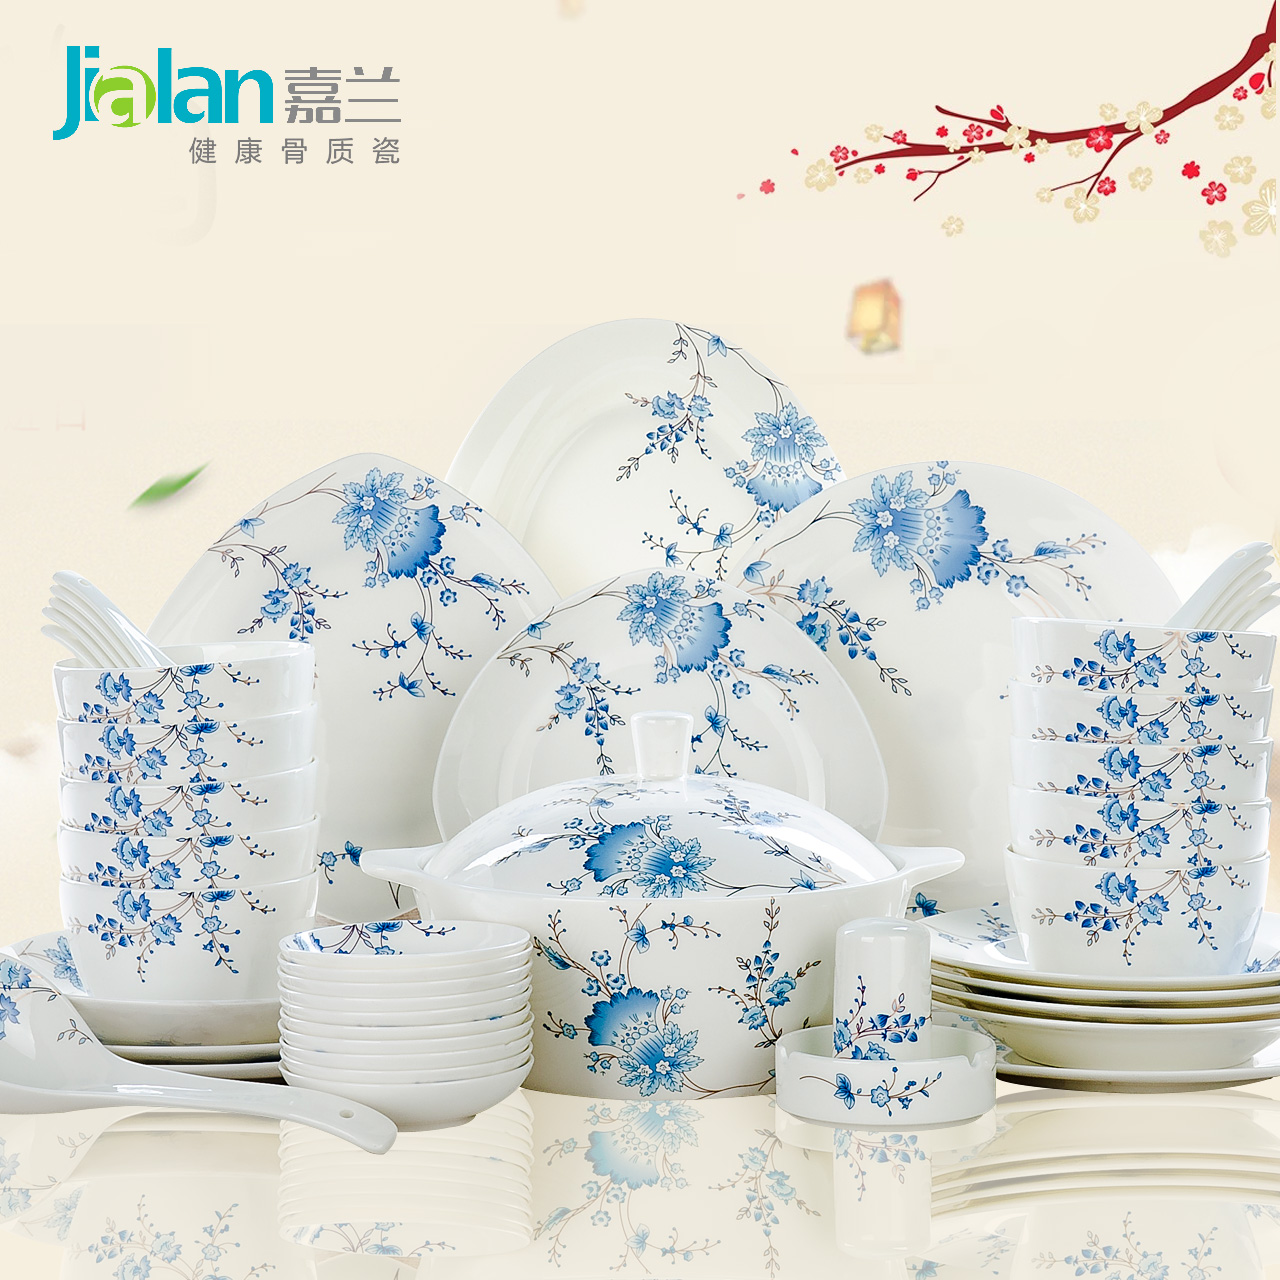 garland head square dishes set kitchen household bone china tableware wedding gifts